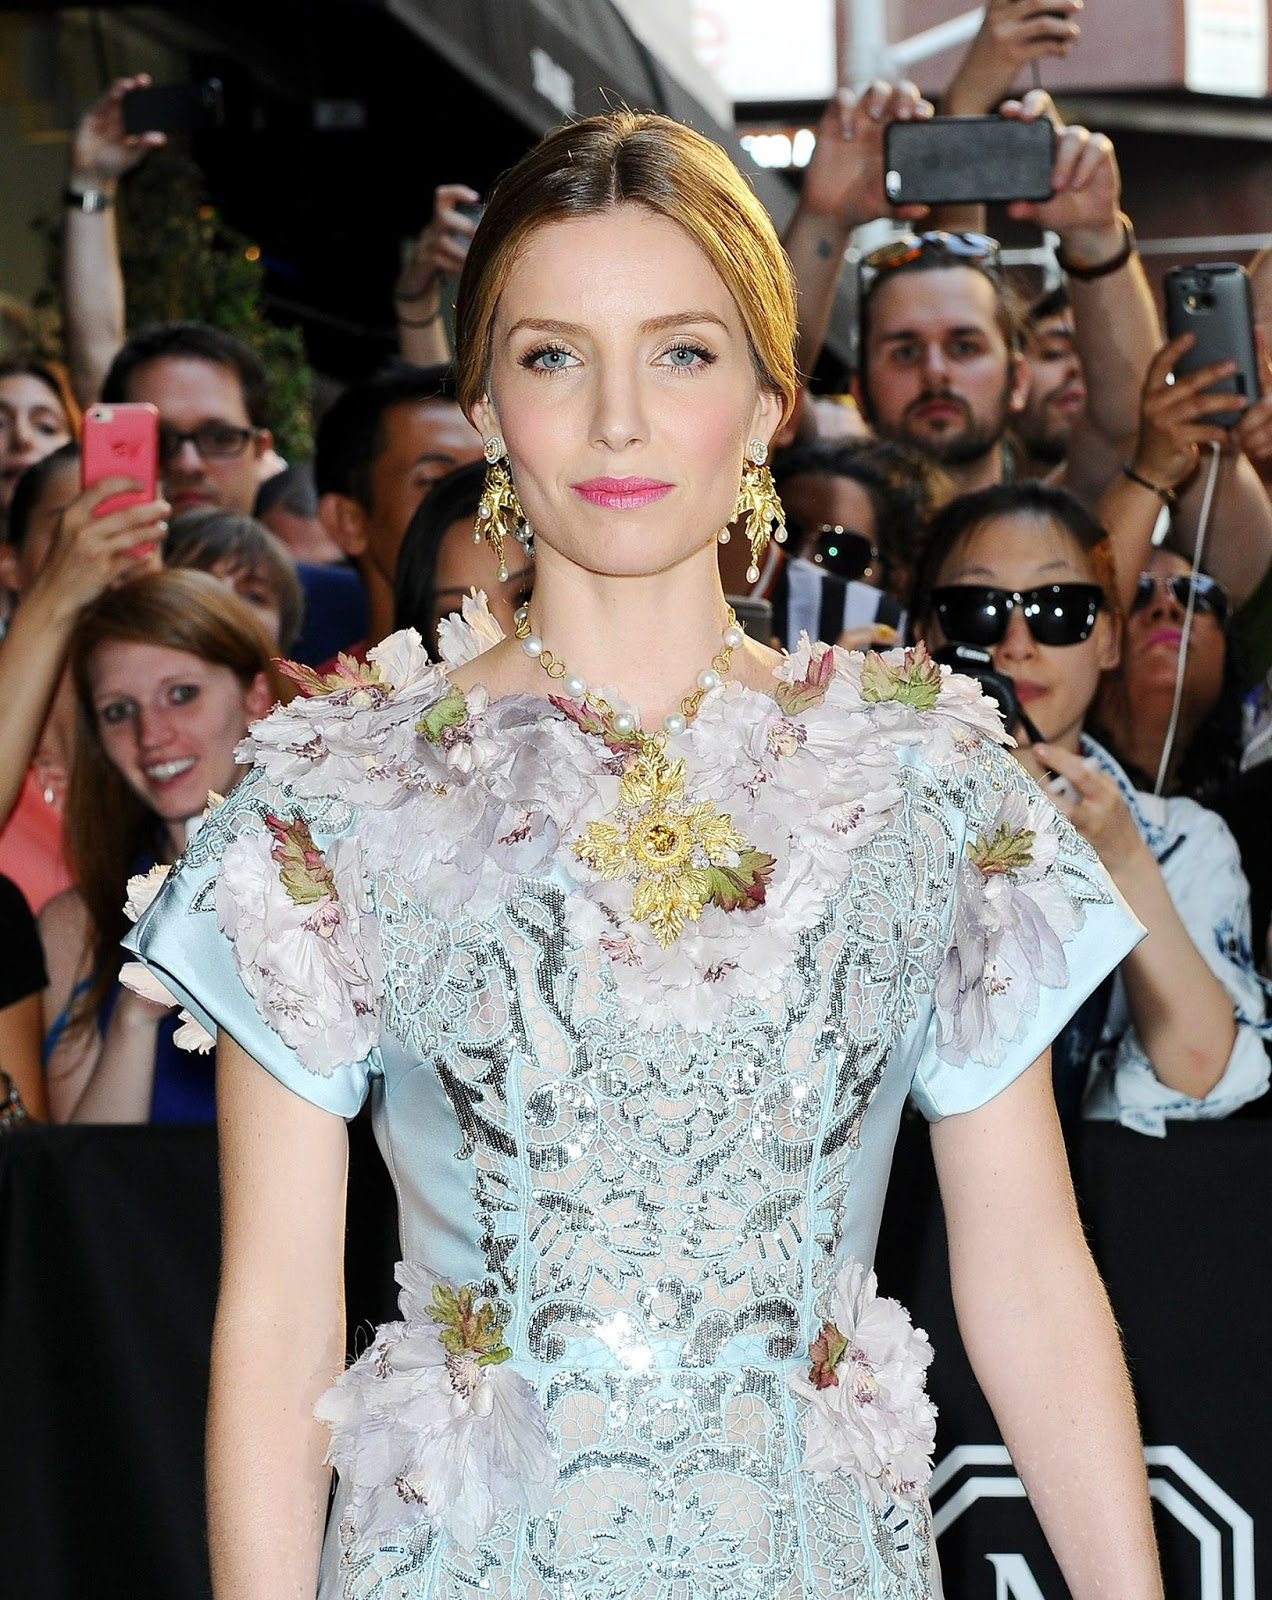 Annabelle Wallis Awesome Profile Pictures Whatsapp Images